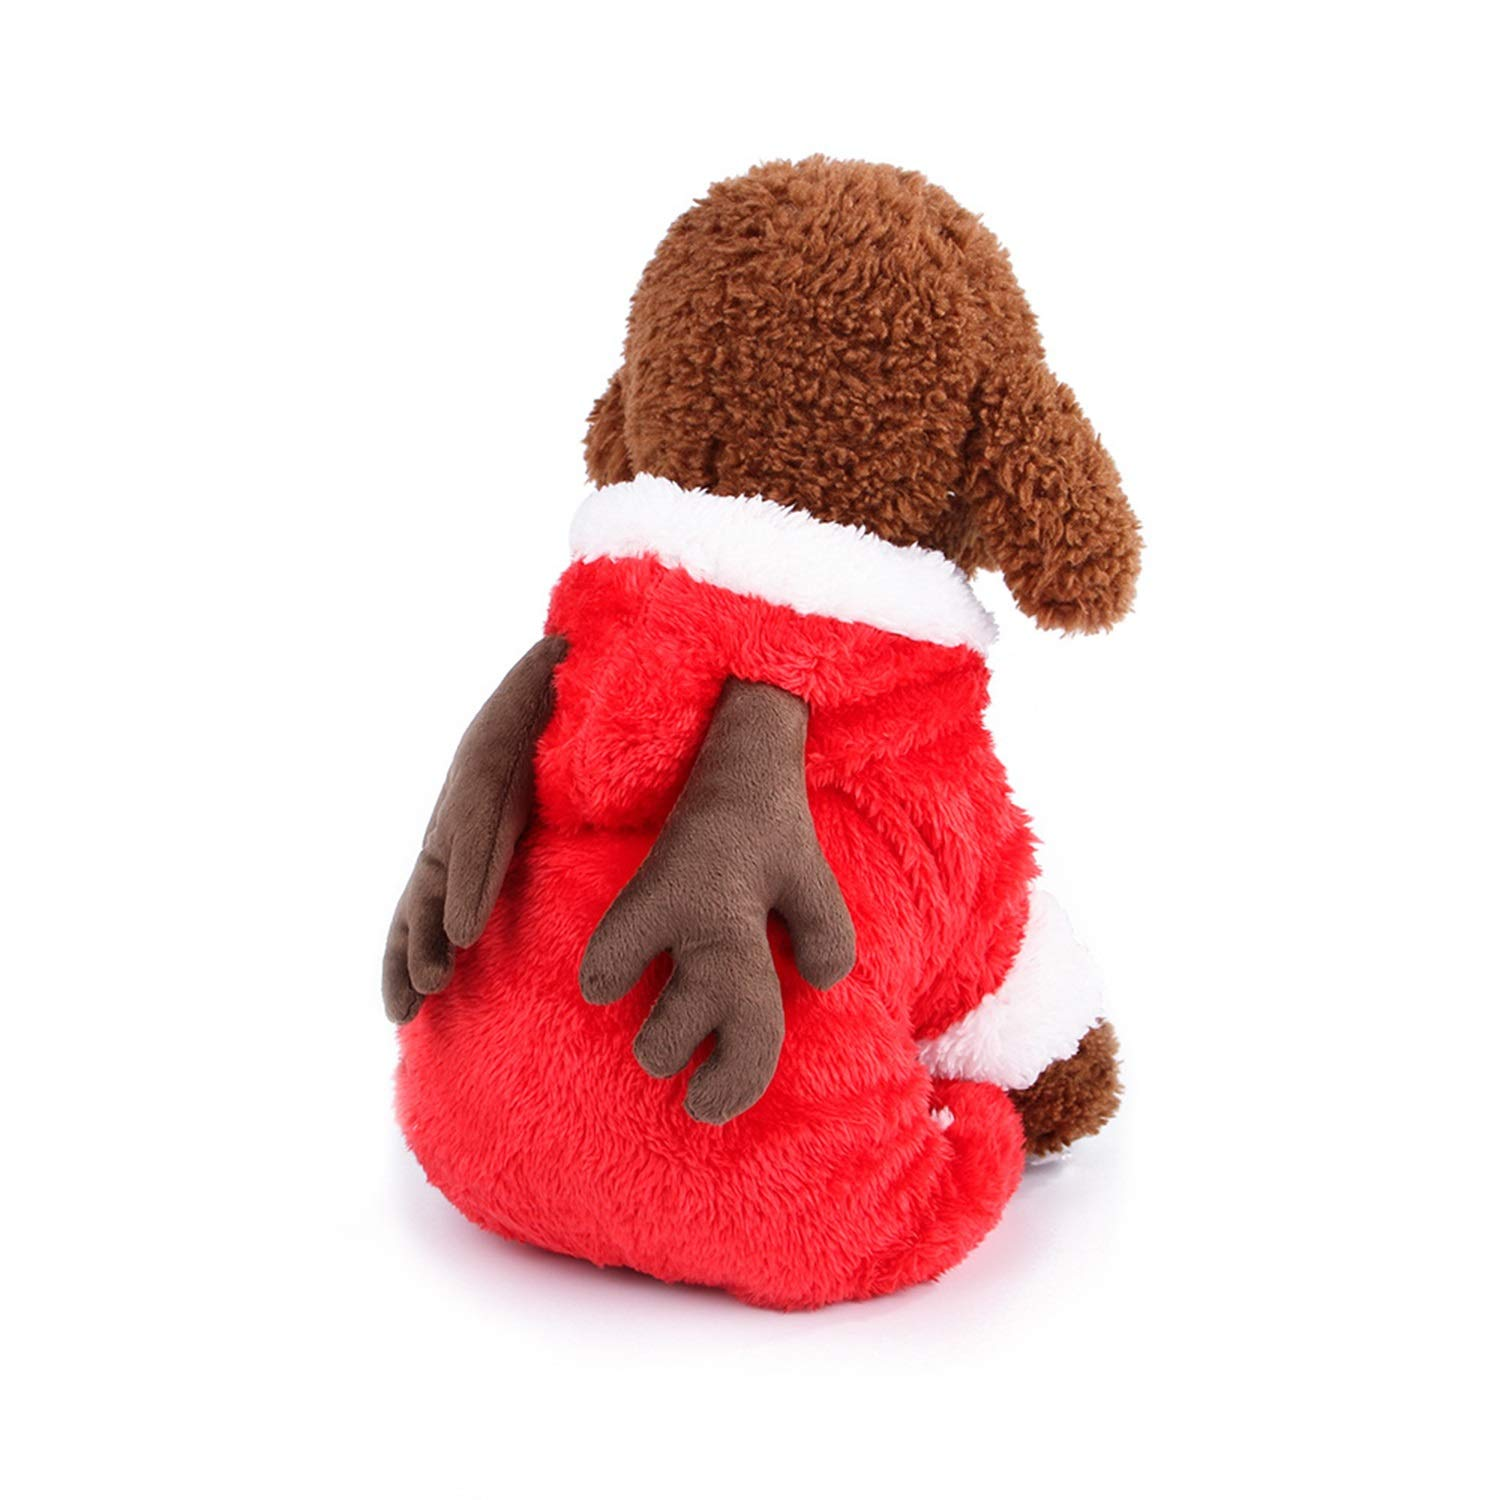 Red L Red L Sile Pet Clothes, Christmas Pet Dress Up Halloween Pet Clothing Winter Warm Pet Coat Thicken Pet Apparel for Dog Cat SL-001 (color   Red, Size   L)